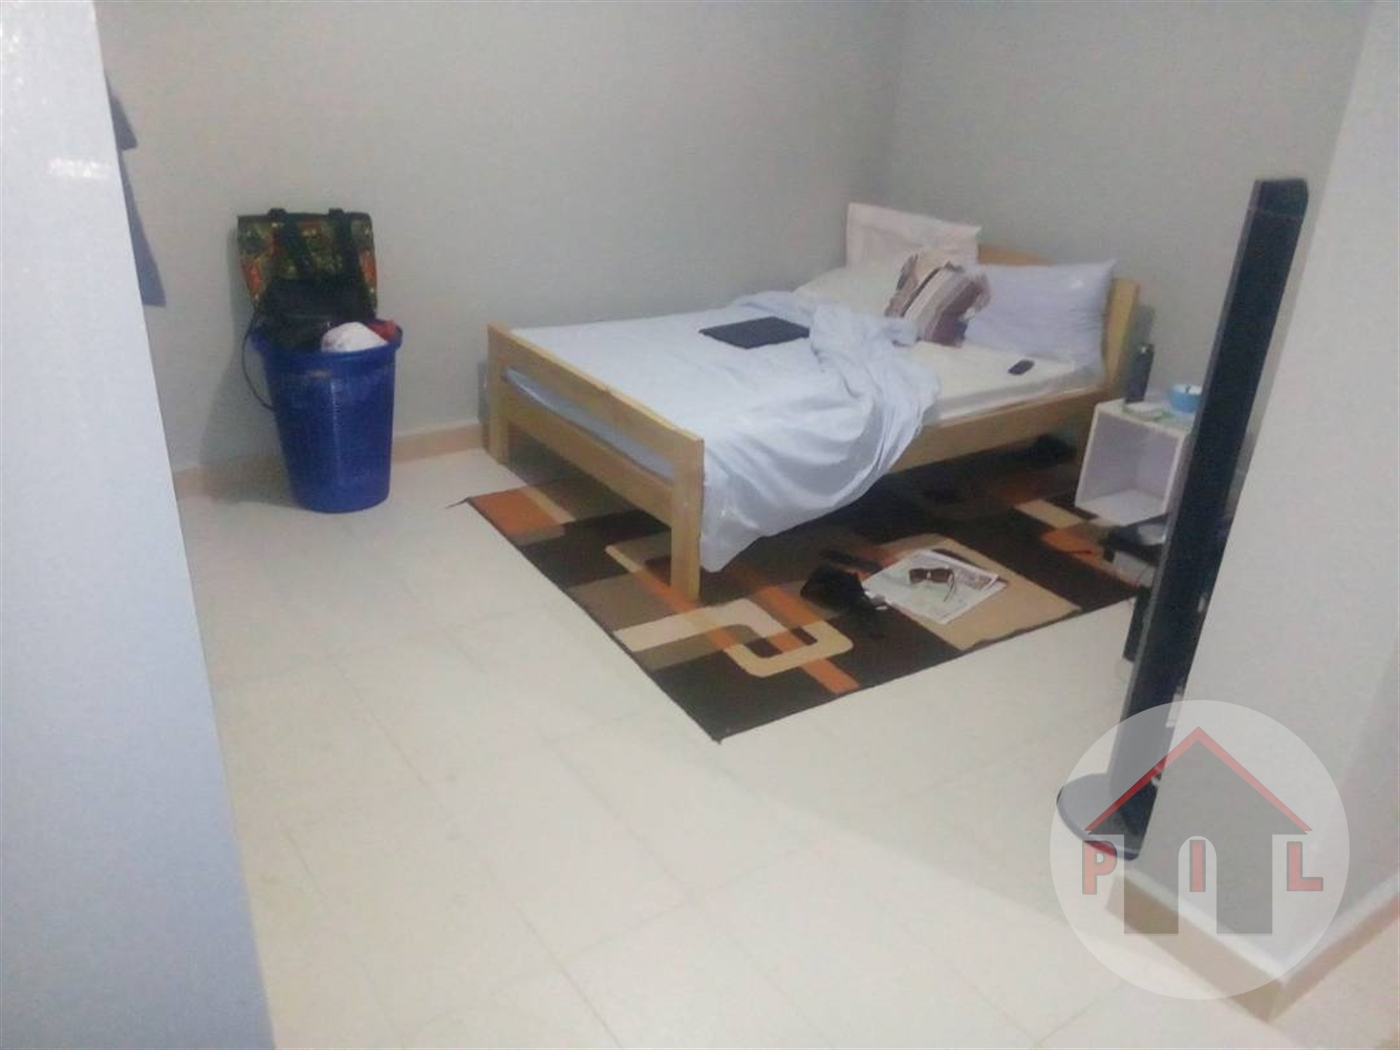 Hostel for sale in Nkozi Manafwa